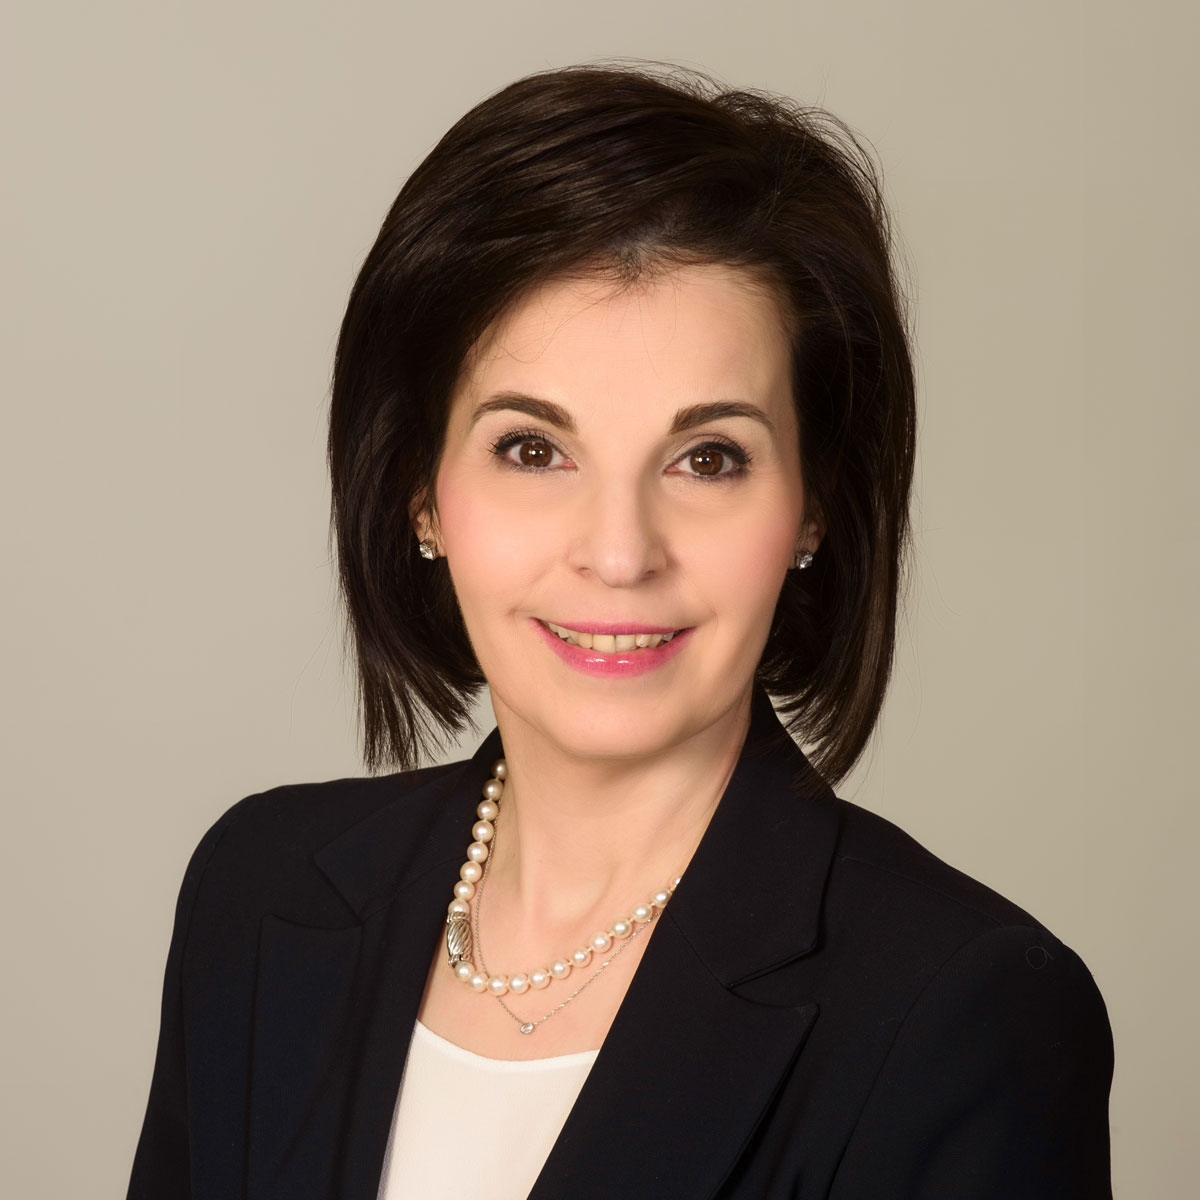 Limits of employer's managerial right during Covid-19. Grace Katsoulis will speak at the 13th National Conference of In-House Counsel